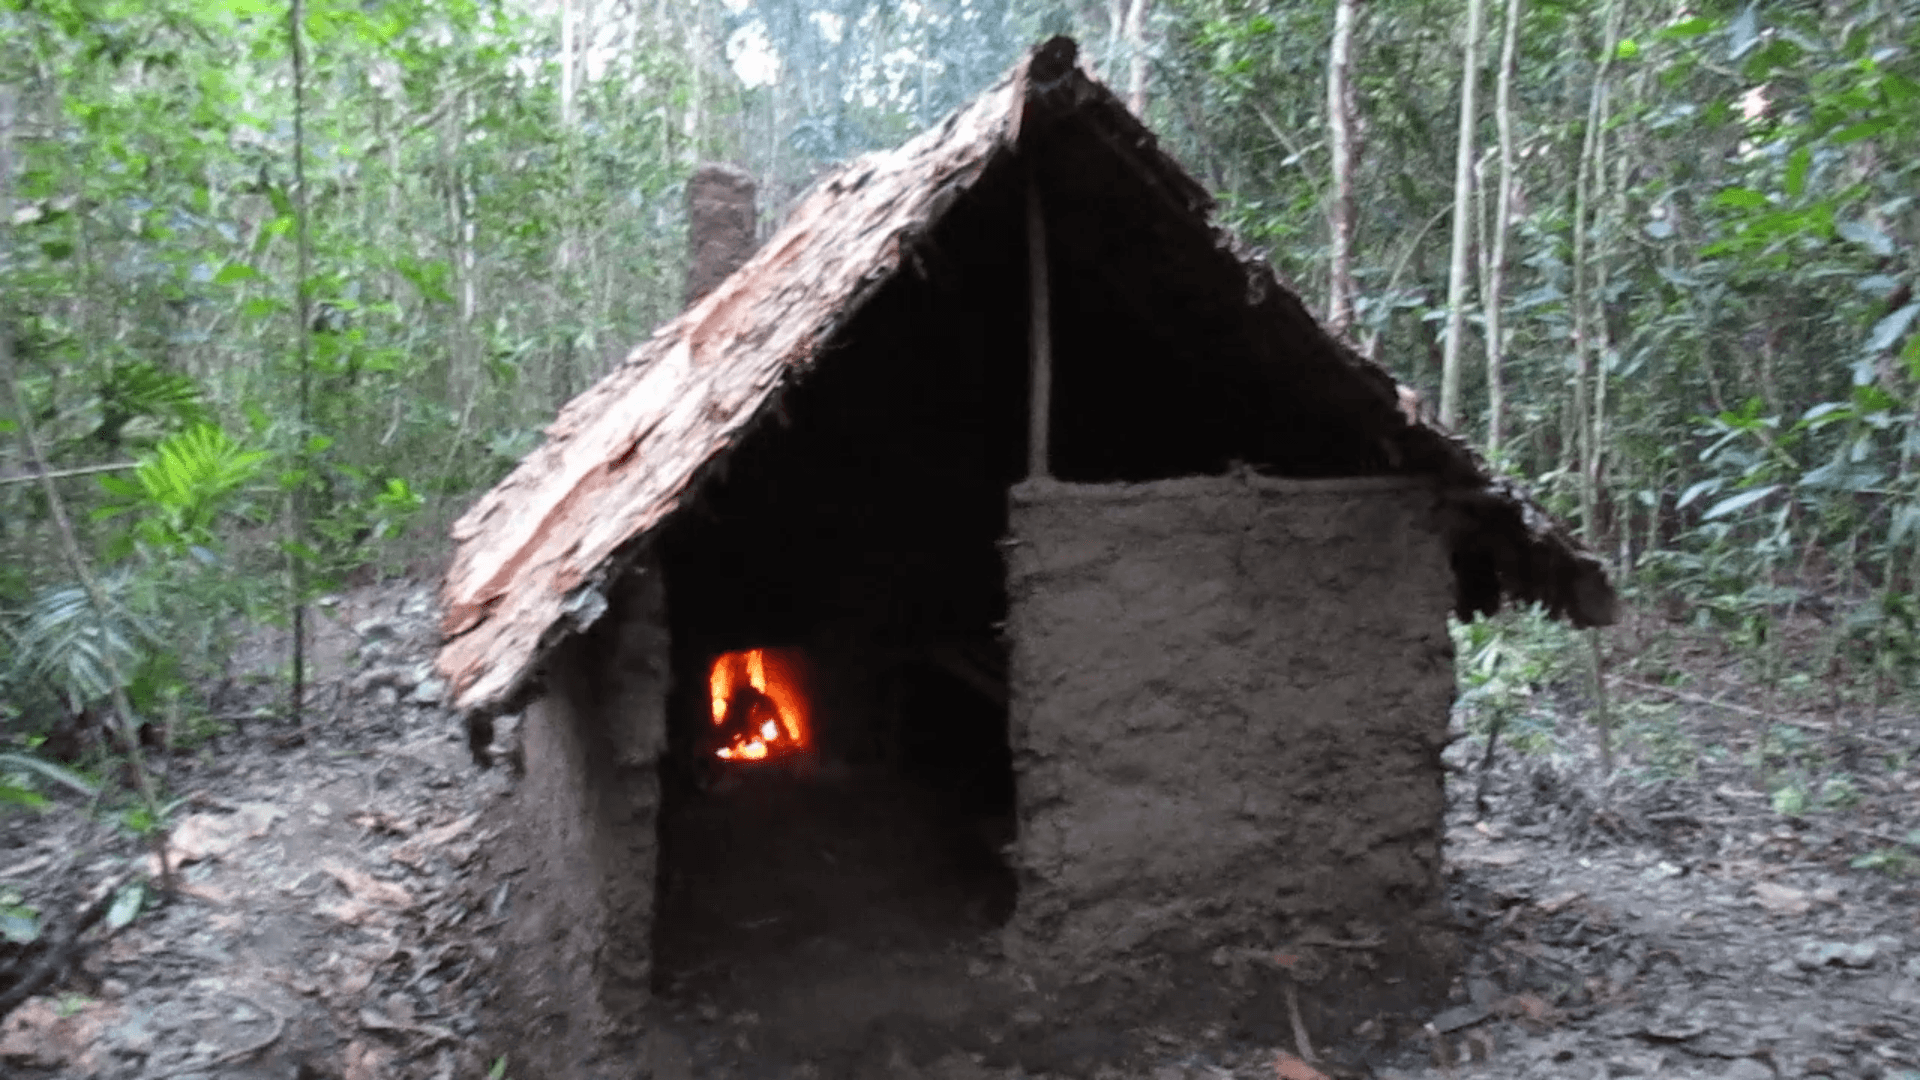 How To Build a House With Your Bare Hands